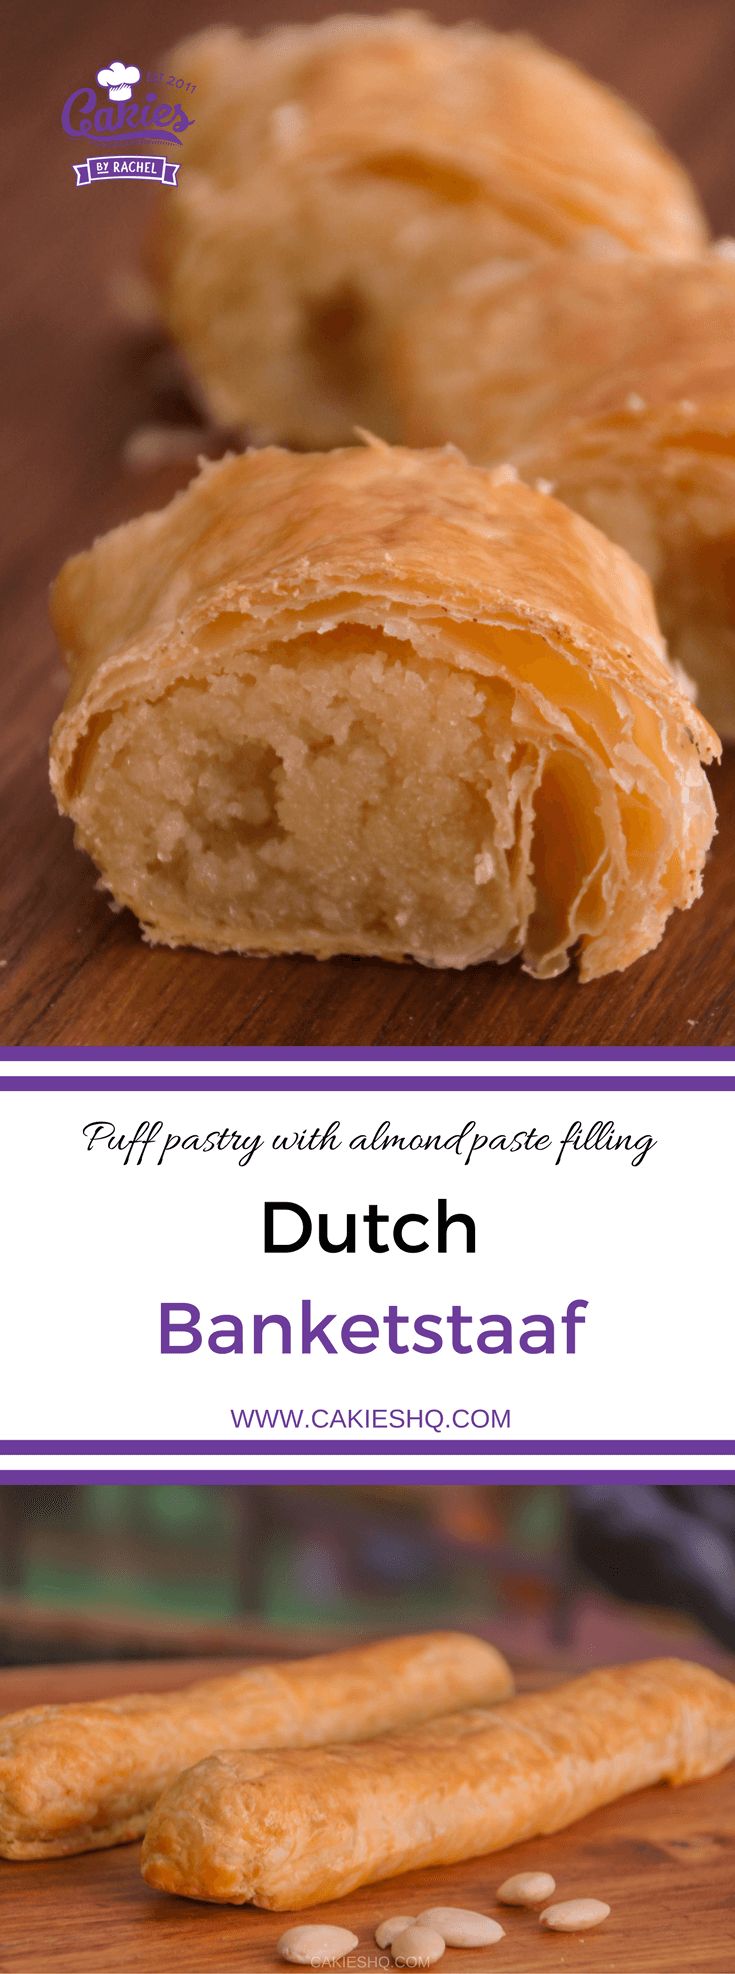 Dutch Banketstaaf Recipe | Dutch Banket Pastry Recipe